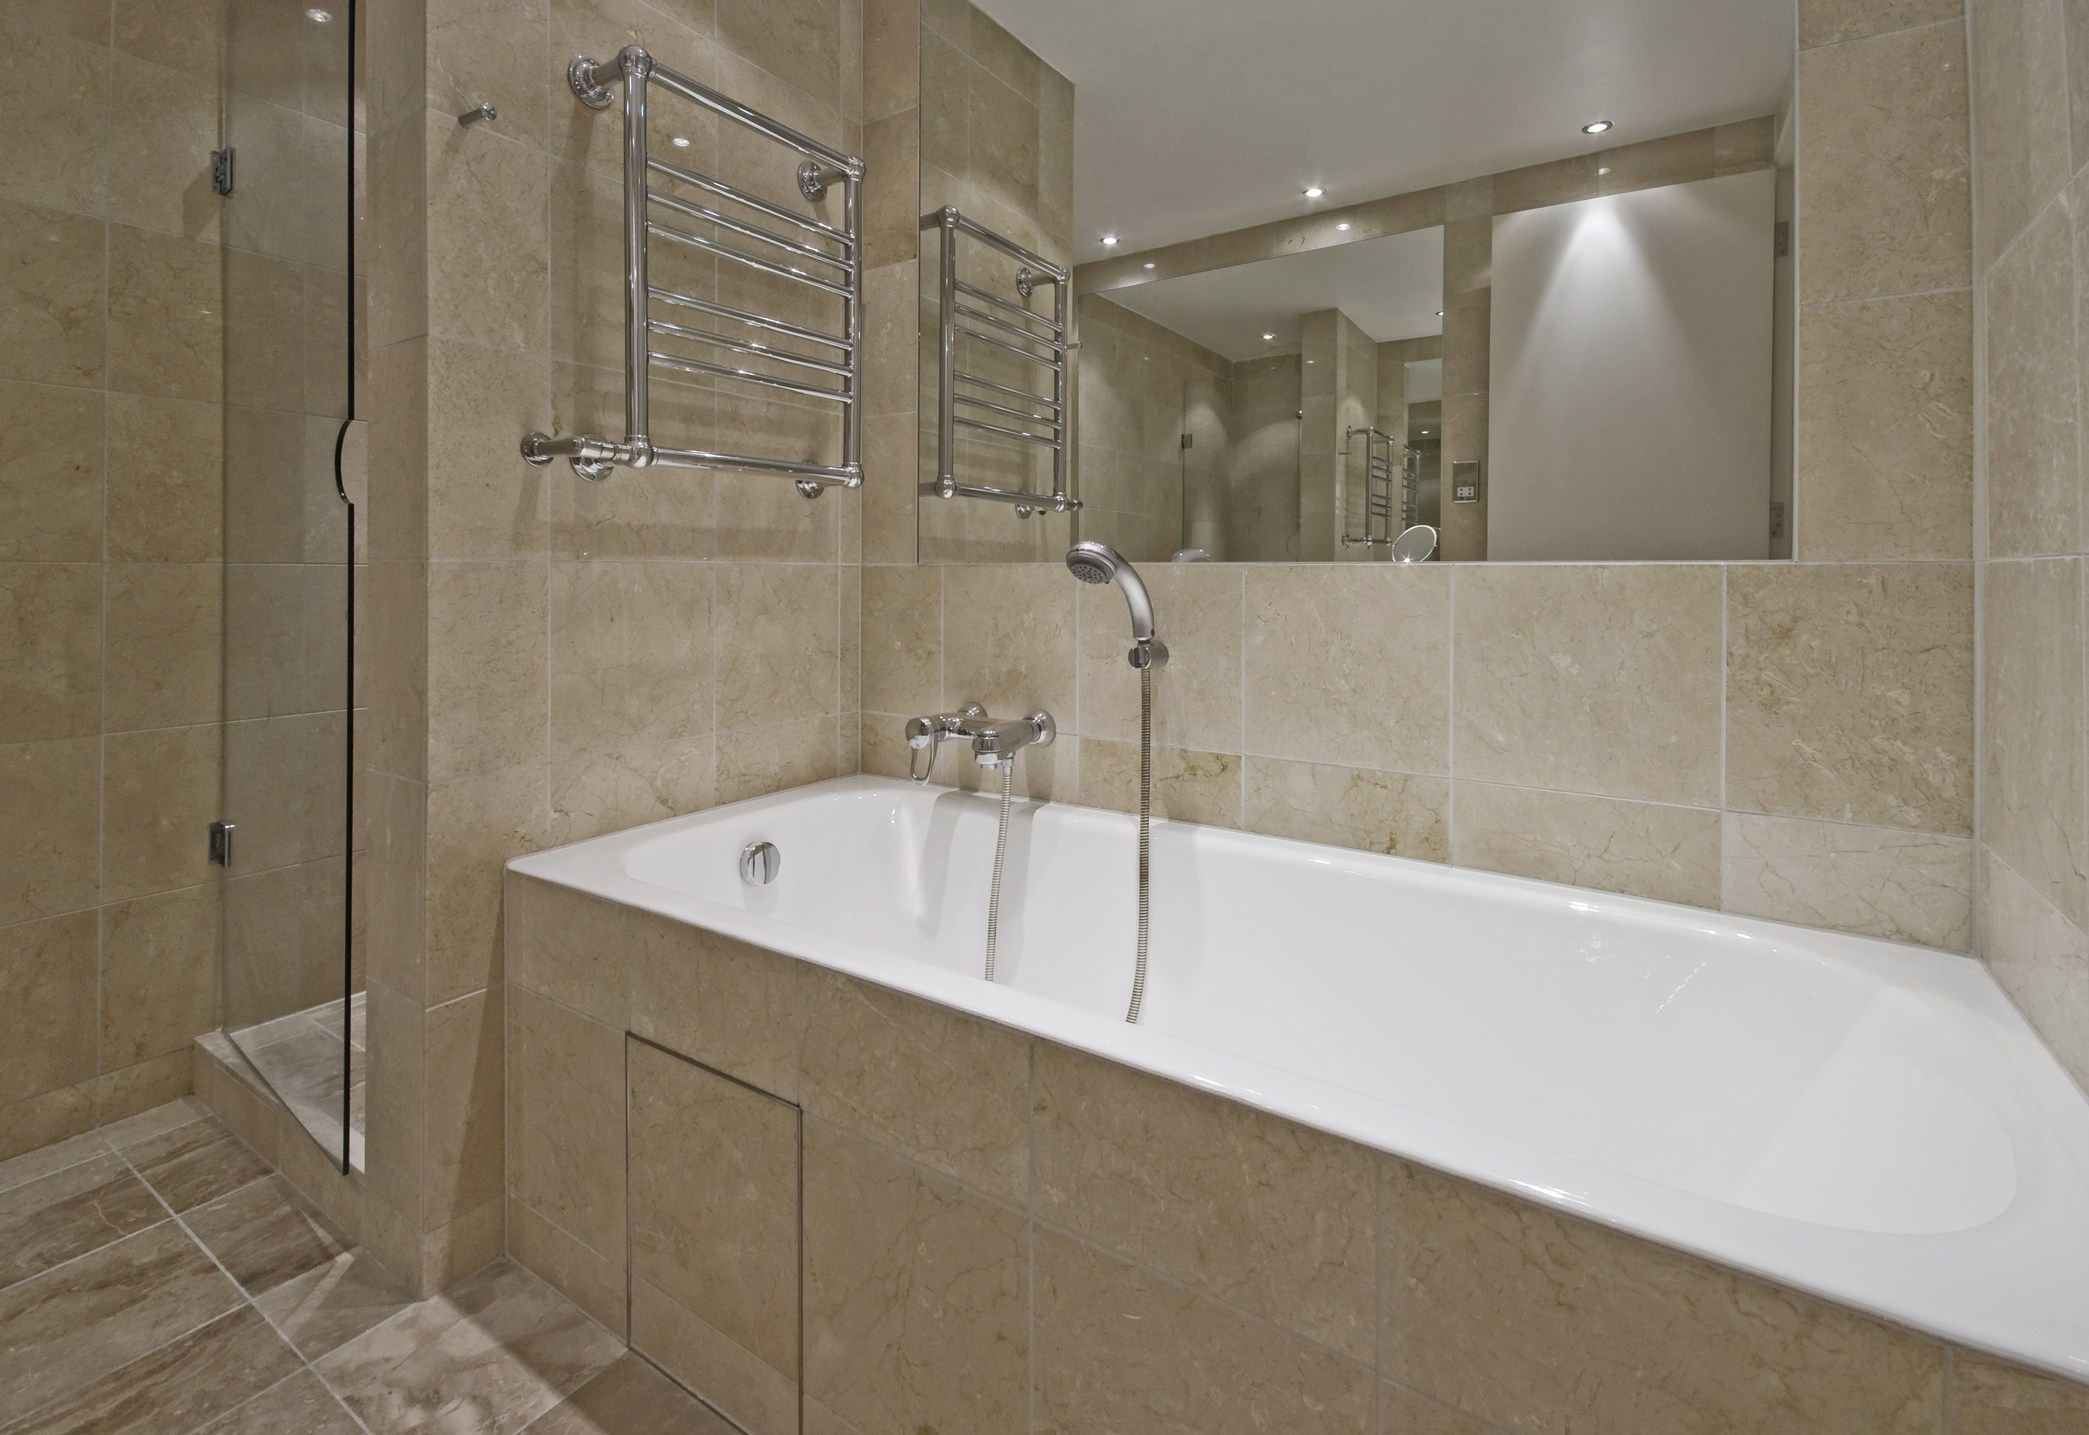 Ashburn Glass Shower Doors 703 520 7250 Glass Repair